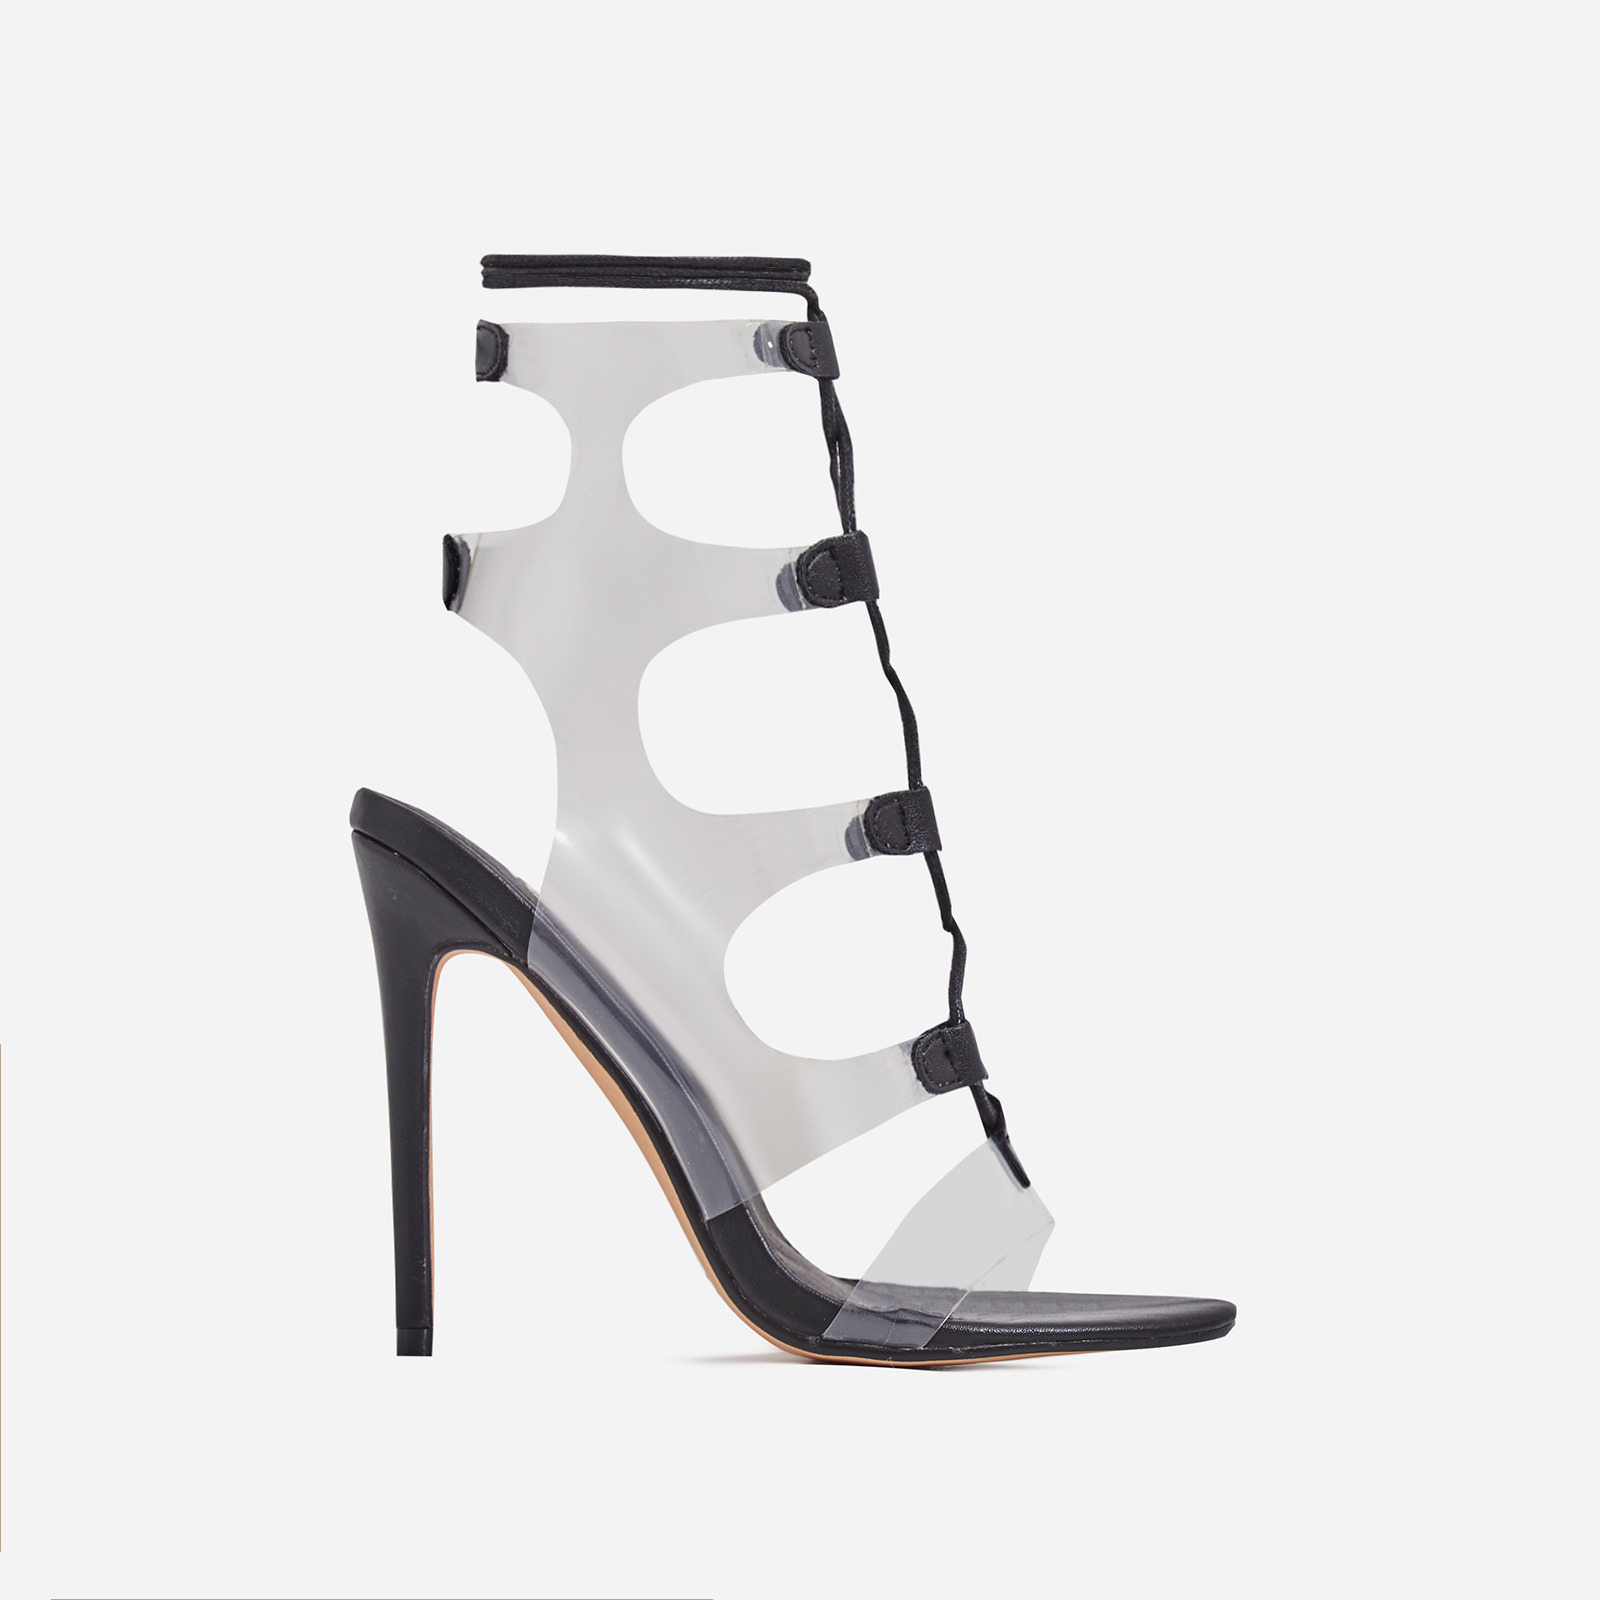 Solstice Lace Up Perspex Heel In Black Faux Leather